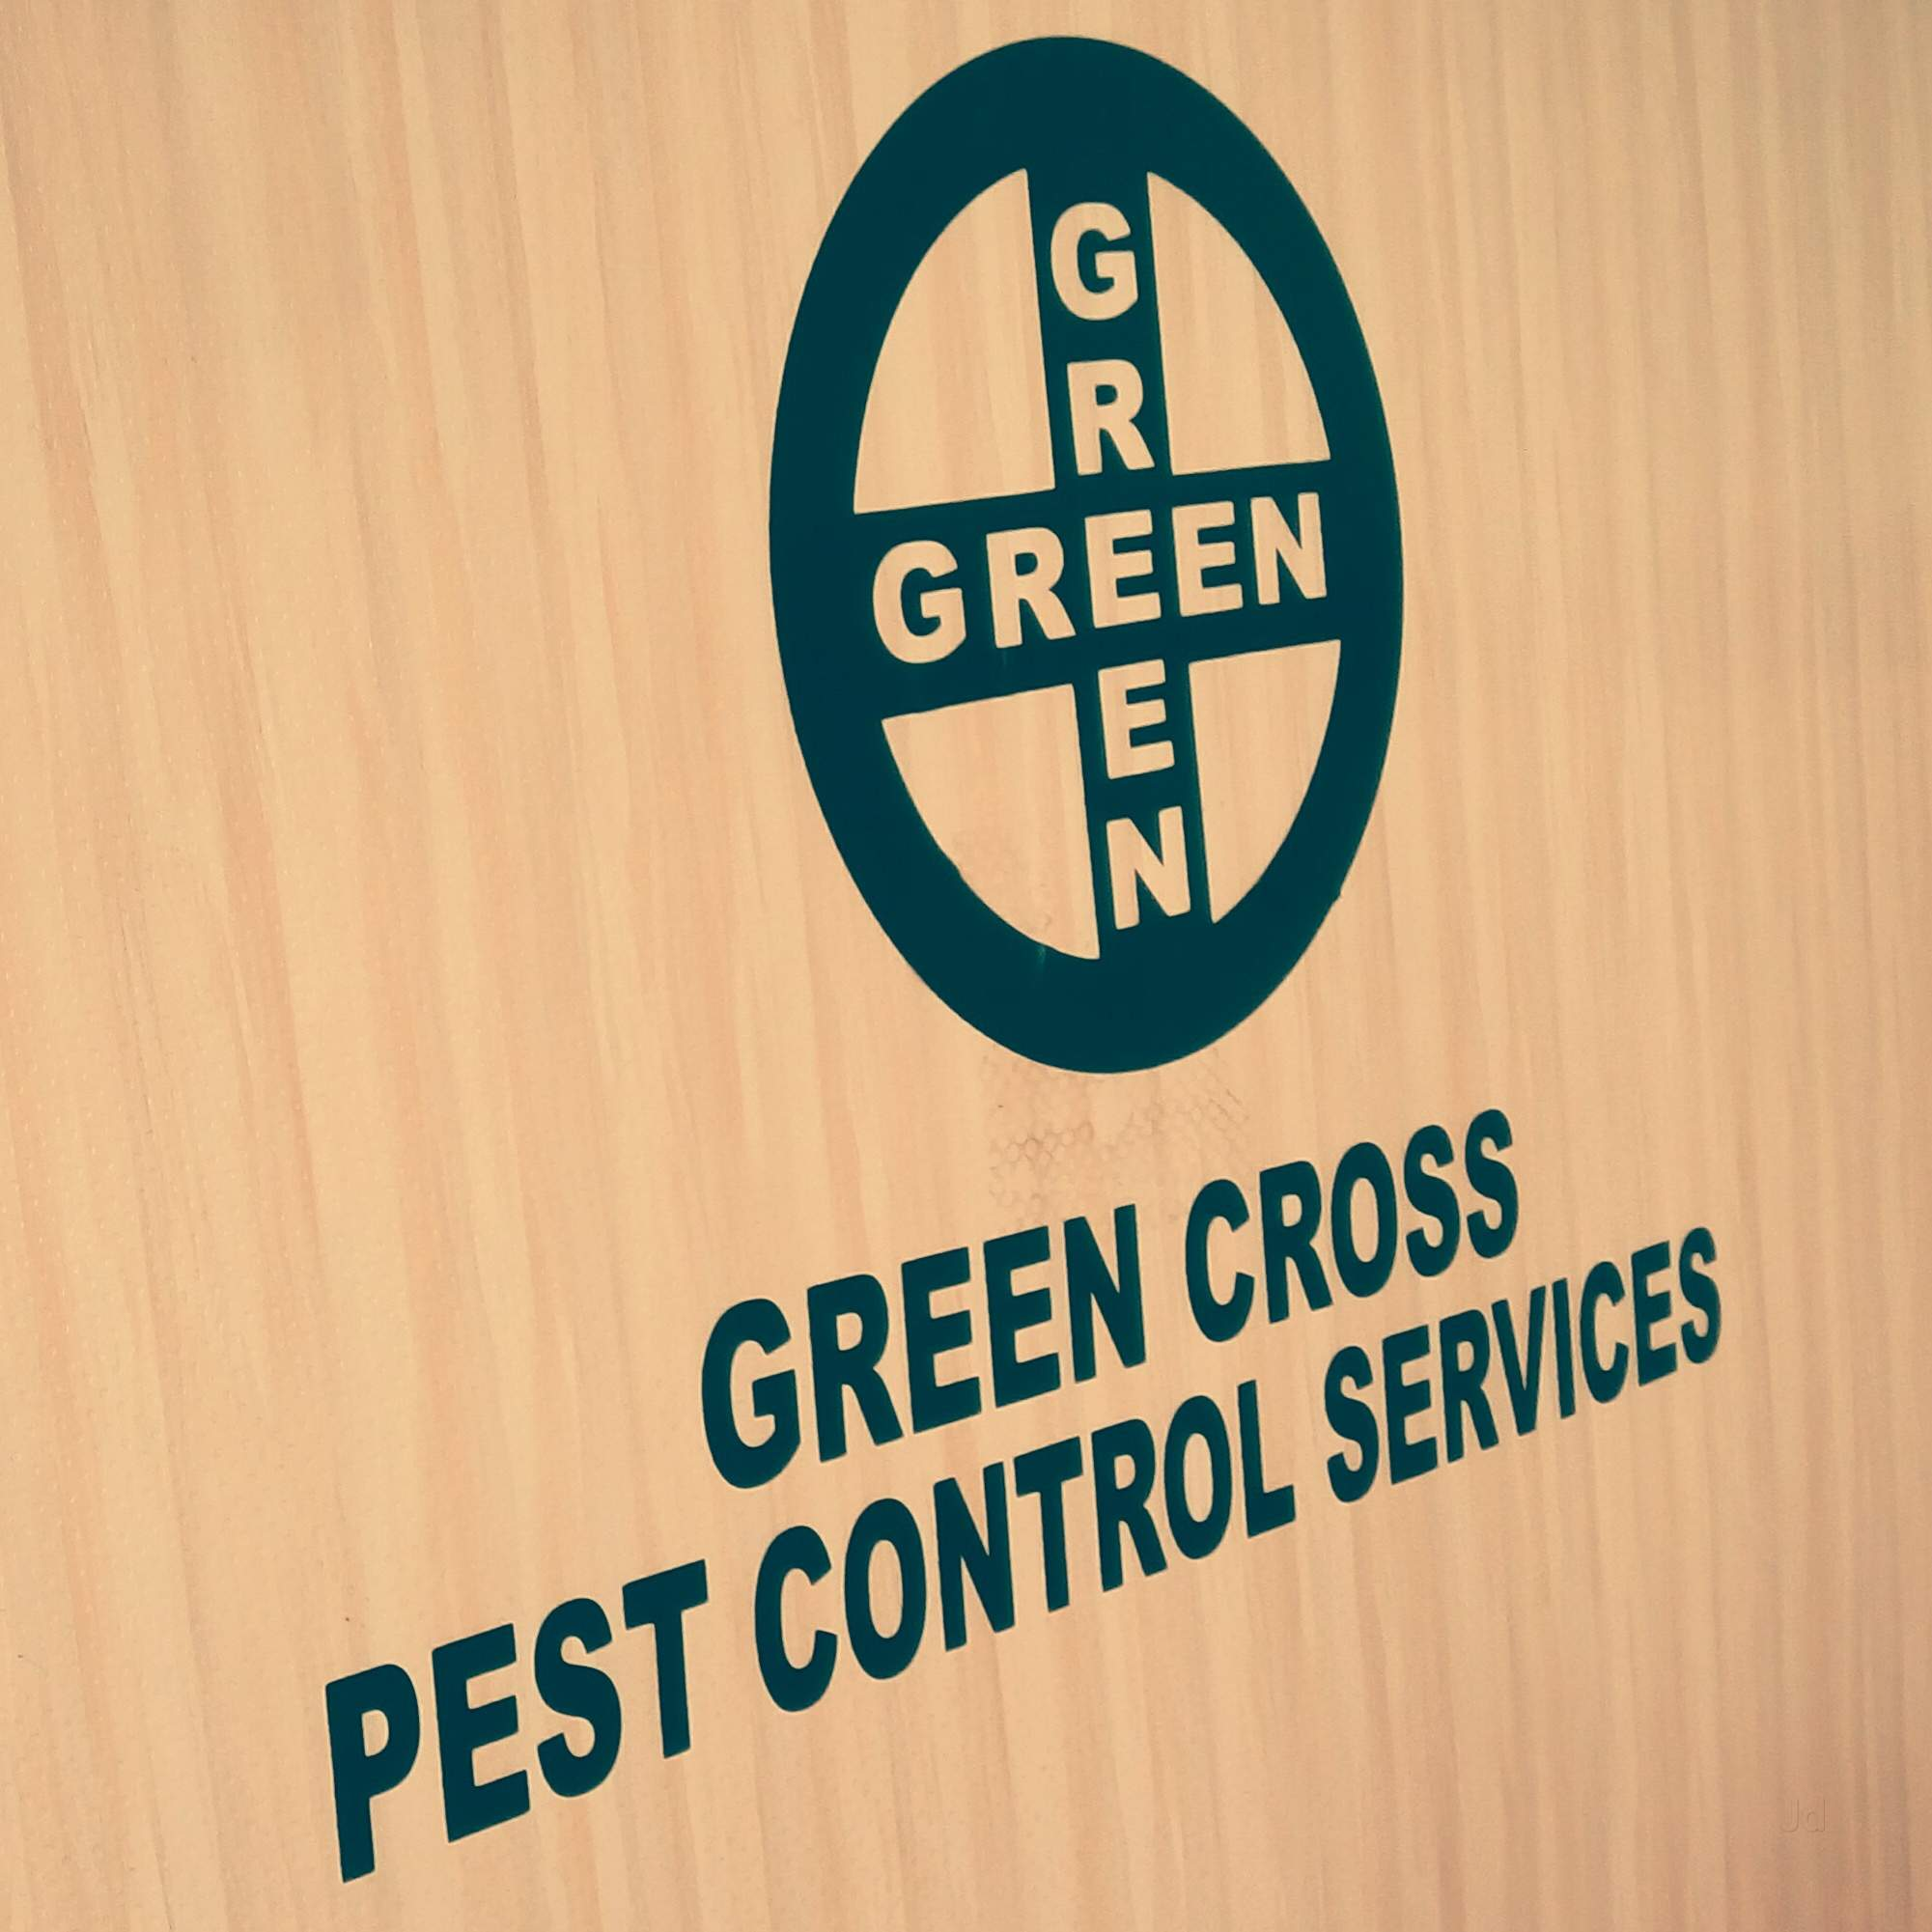 Green Cross Pest Control Services